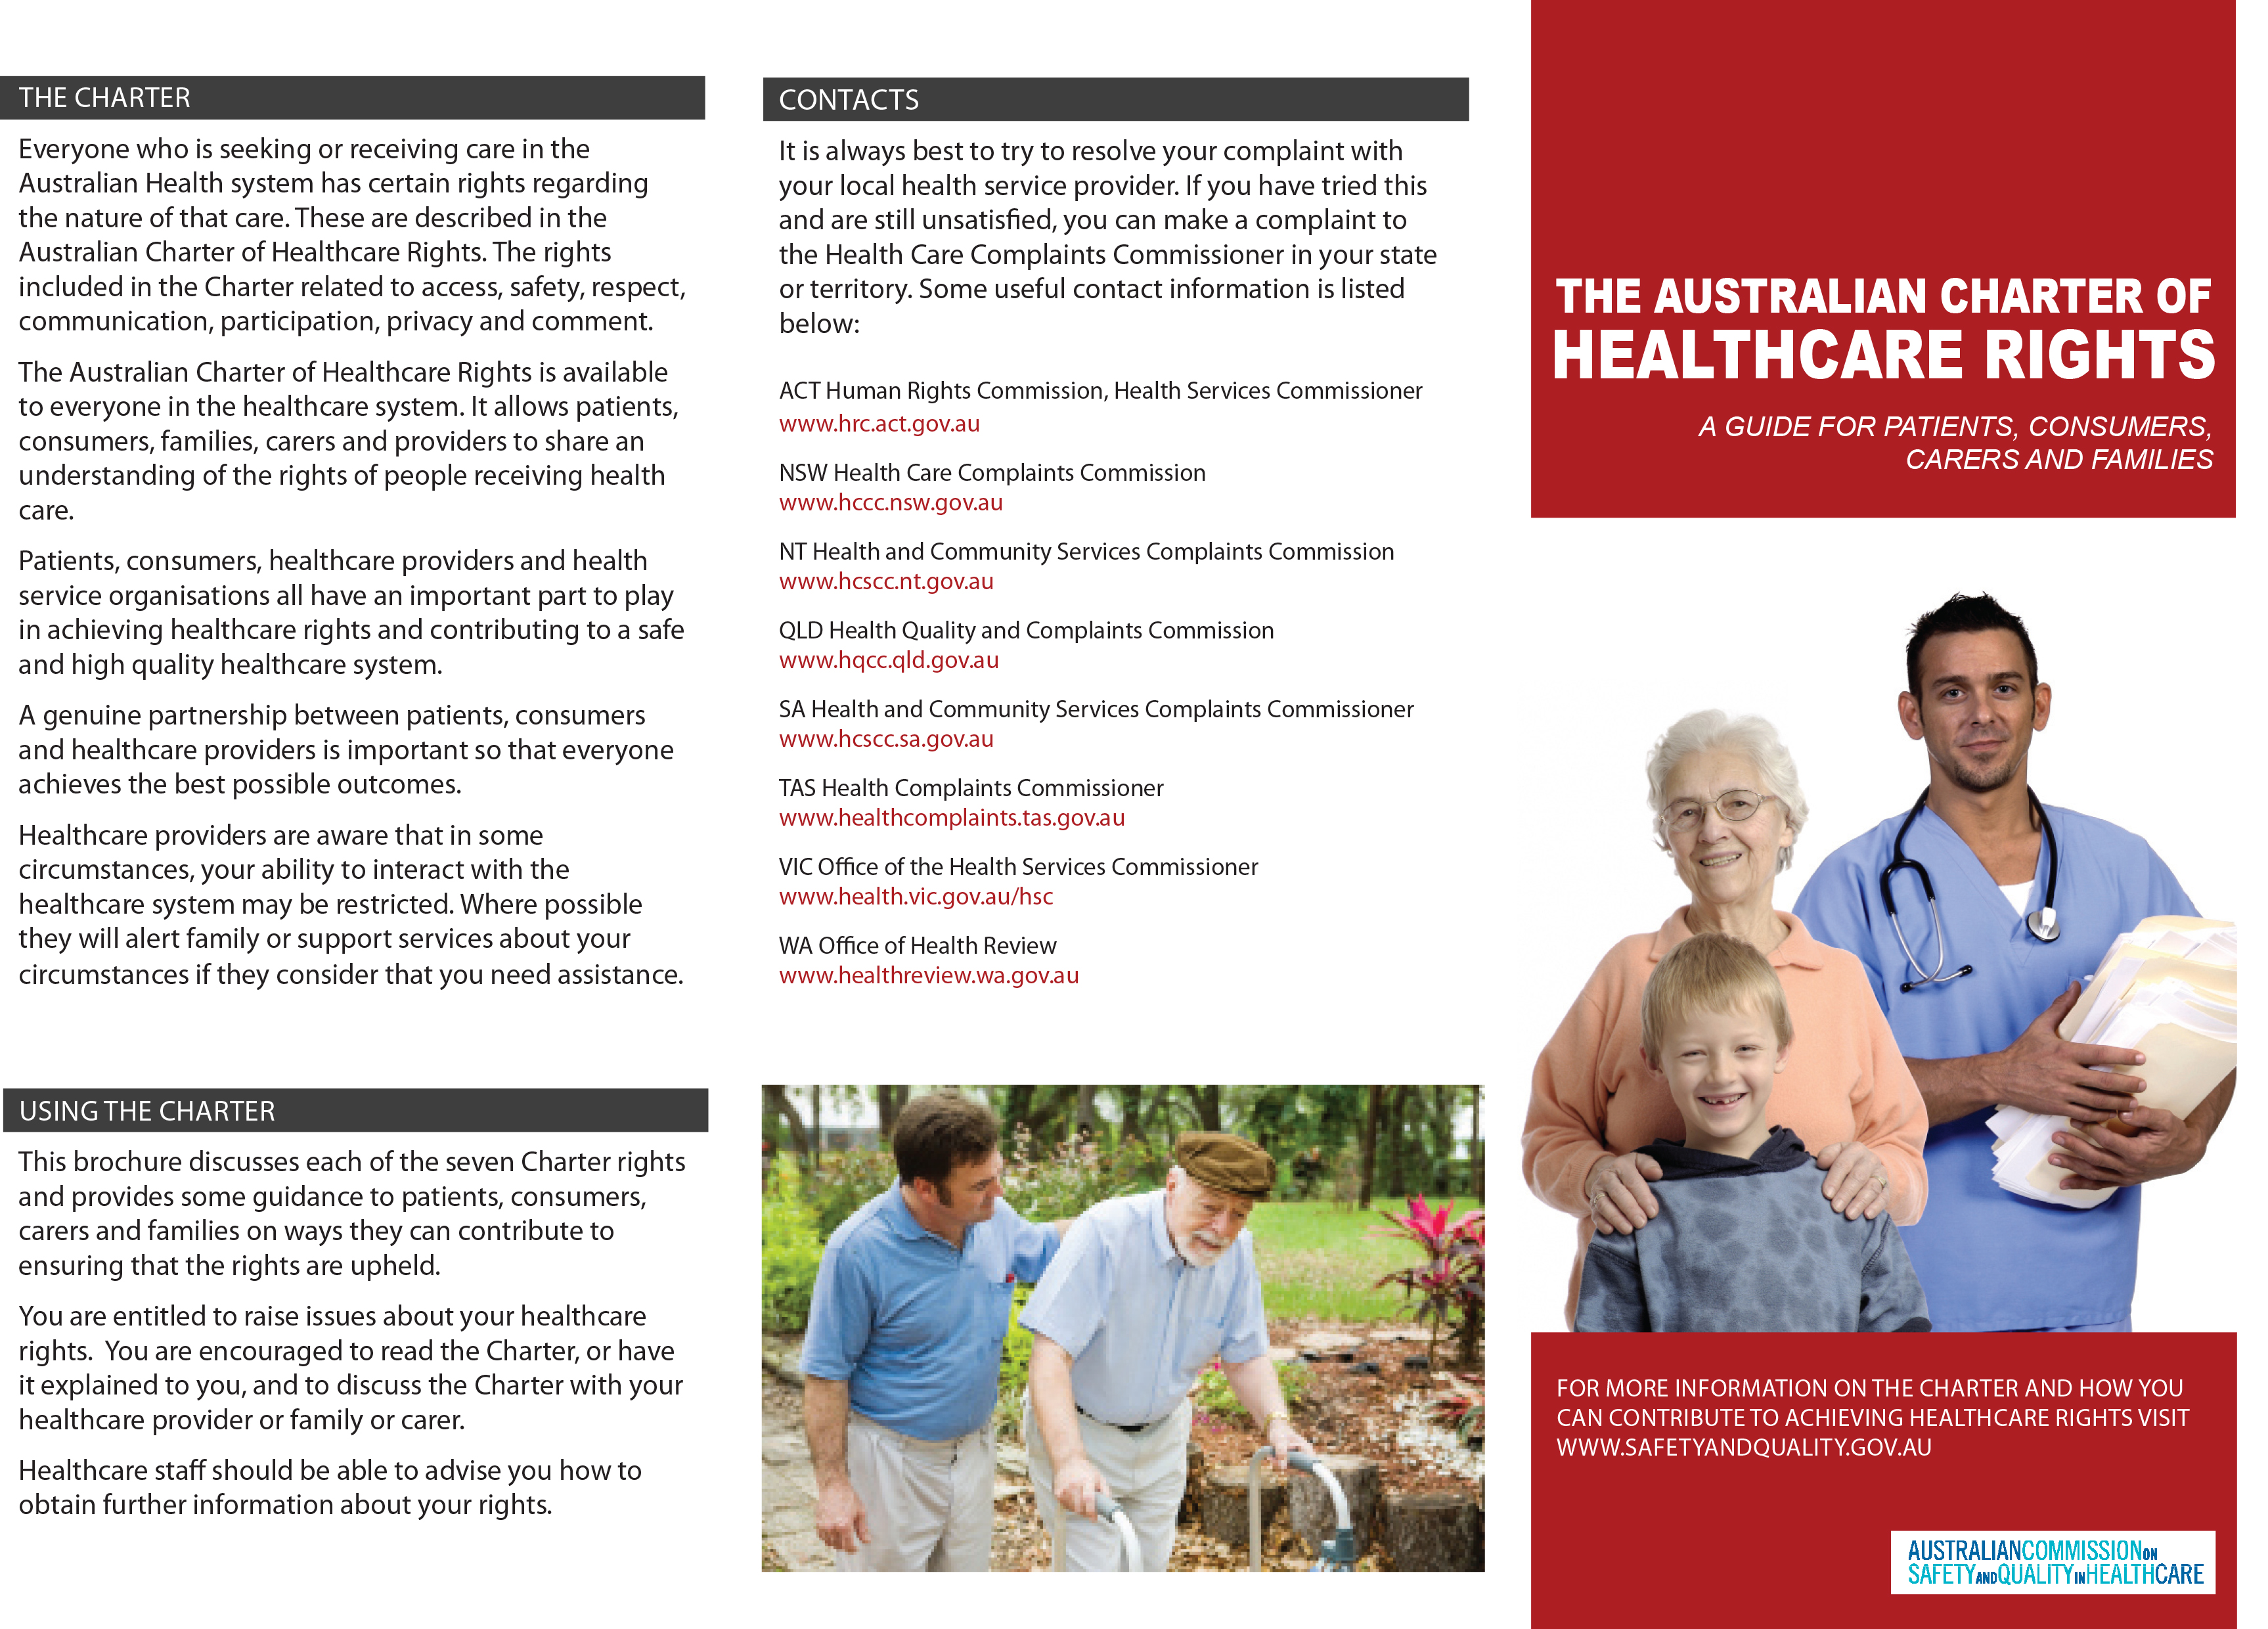 Australian Charter of Healthcare Rights: Guide for patients, consumers, carers and families - ACSQHC (2007)